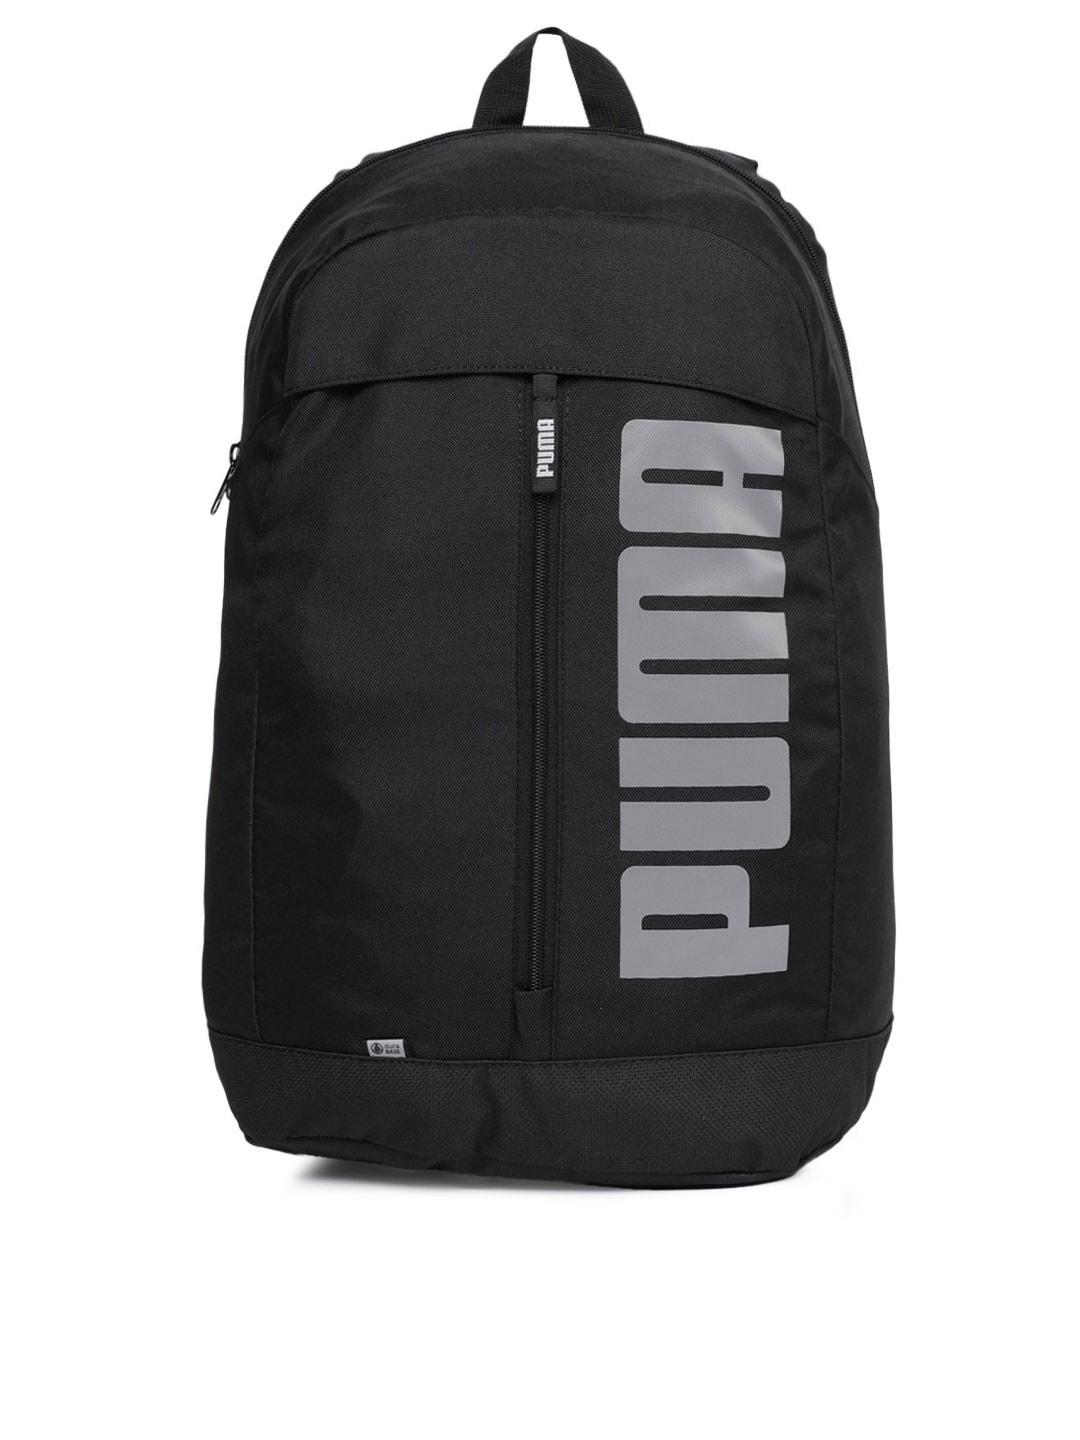 343a6f59aedc Puma® - Buy Orignal Puma products in India